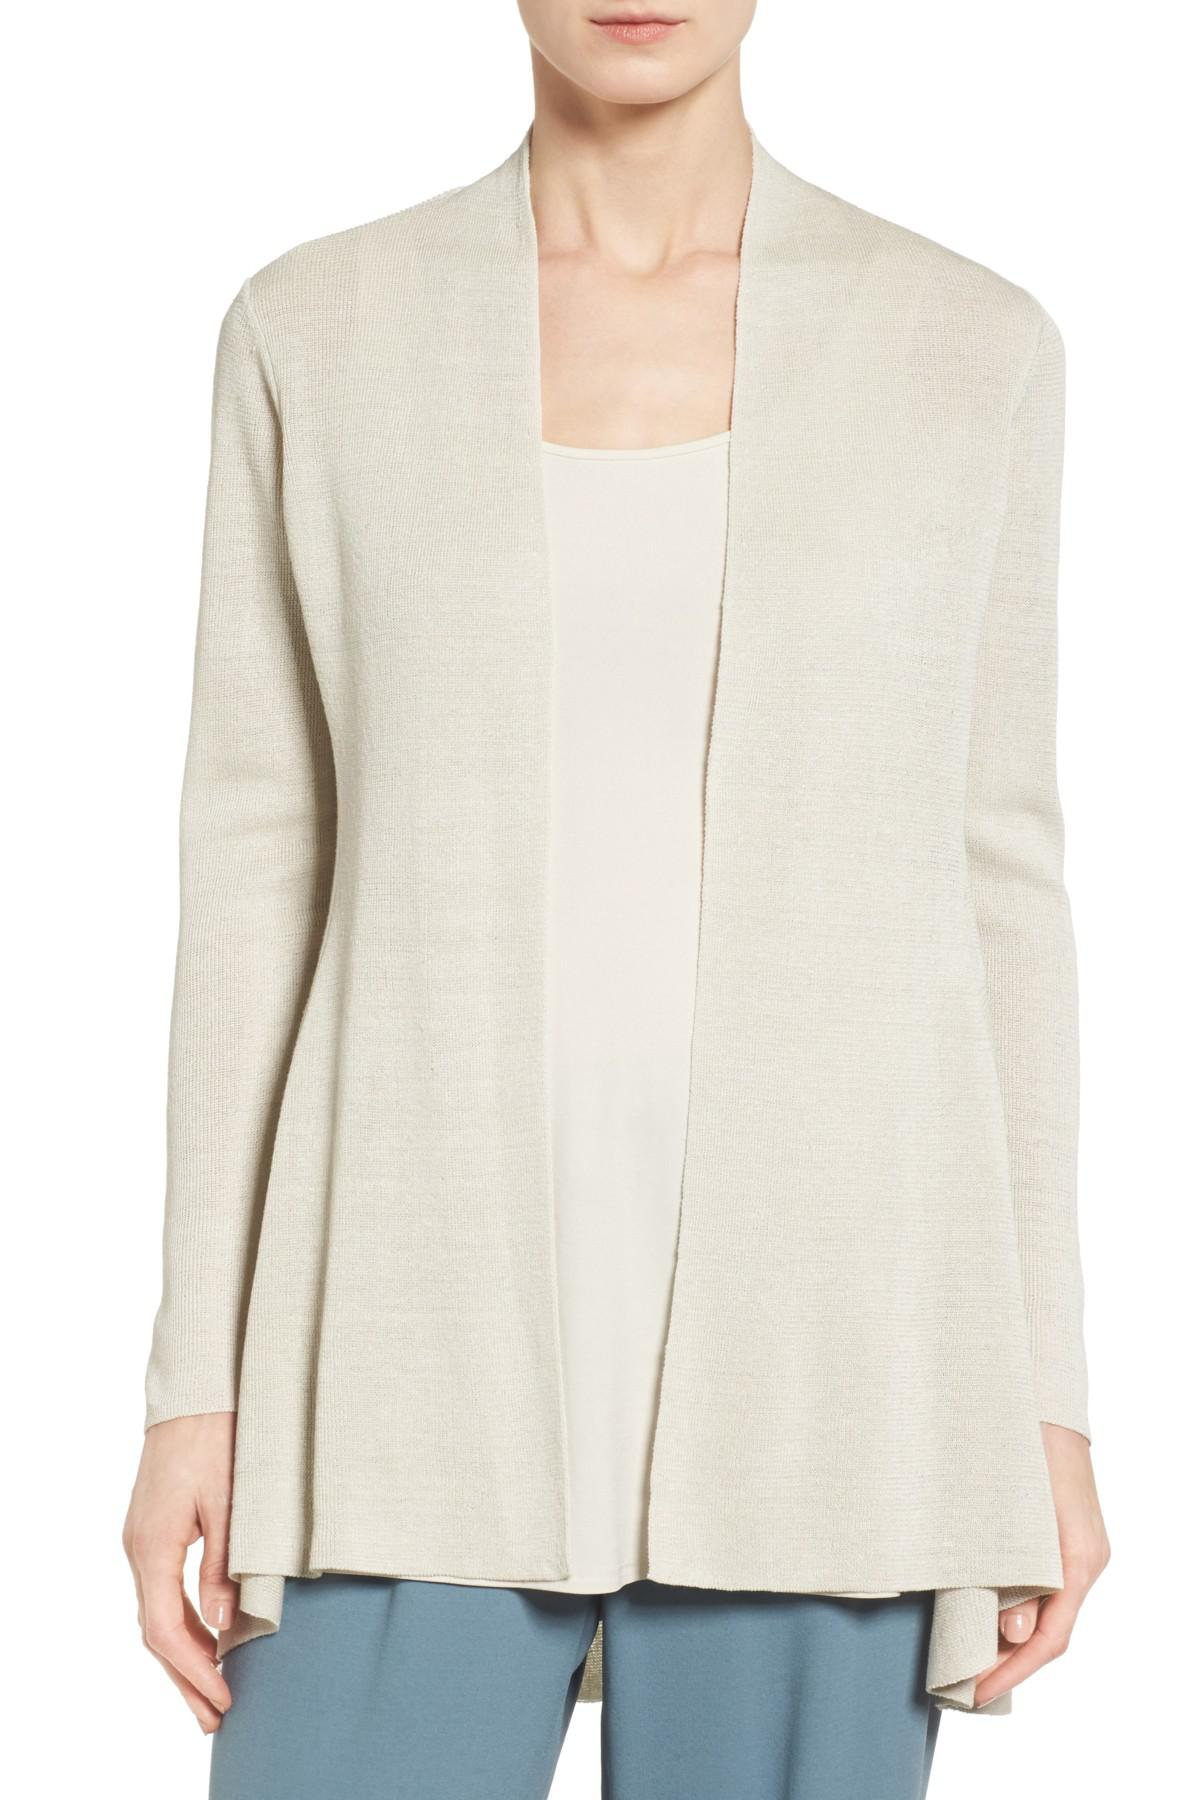 bateau jersey eileen and nordstrom hi by lo free fisher pin on rack top shipping